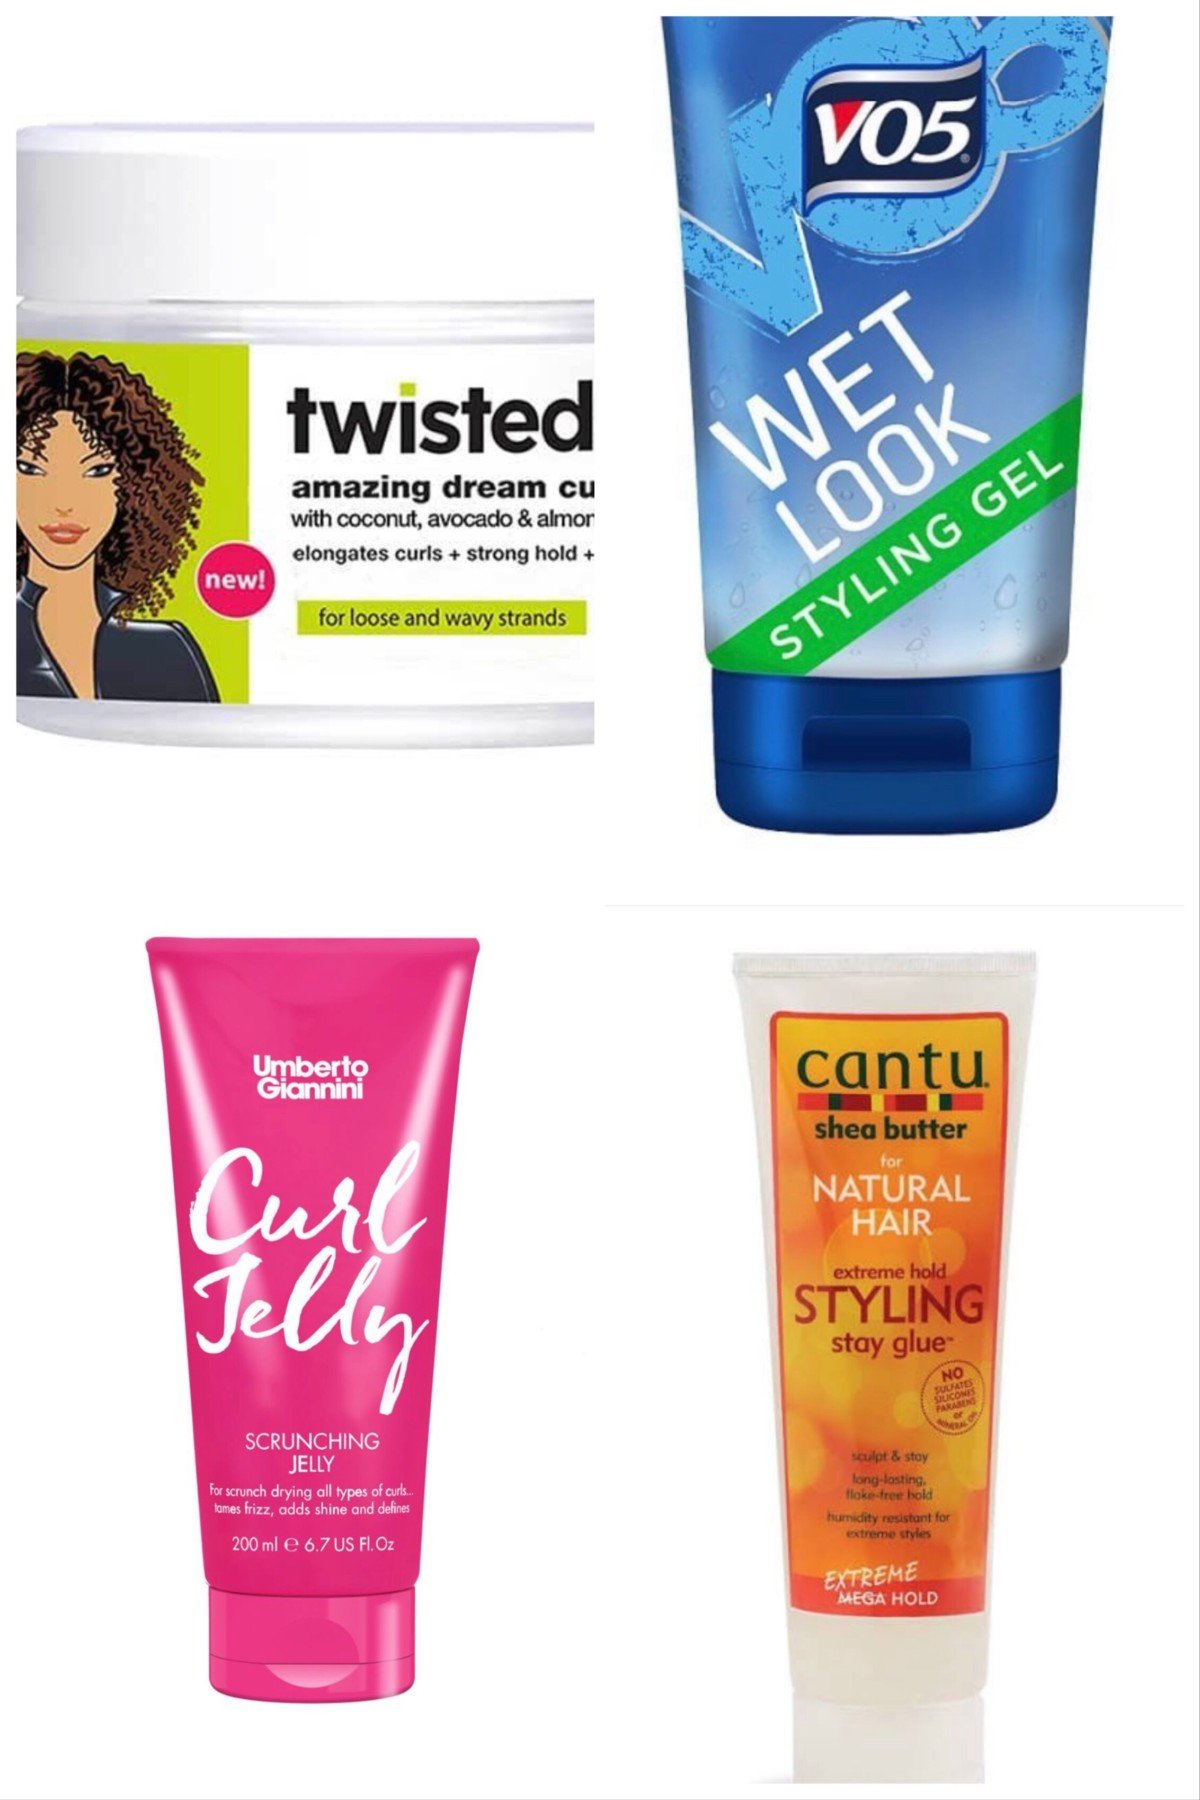 Curly girl method gels from UK supermarkets and drugstores